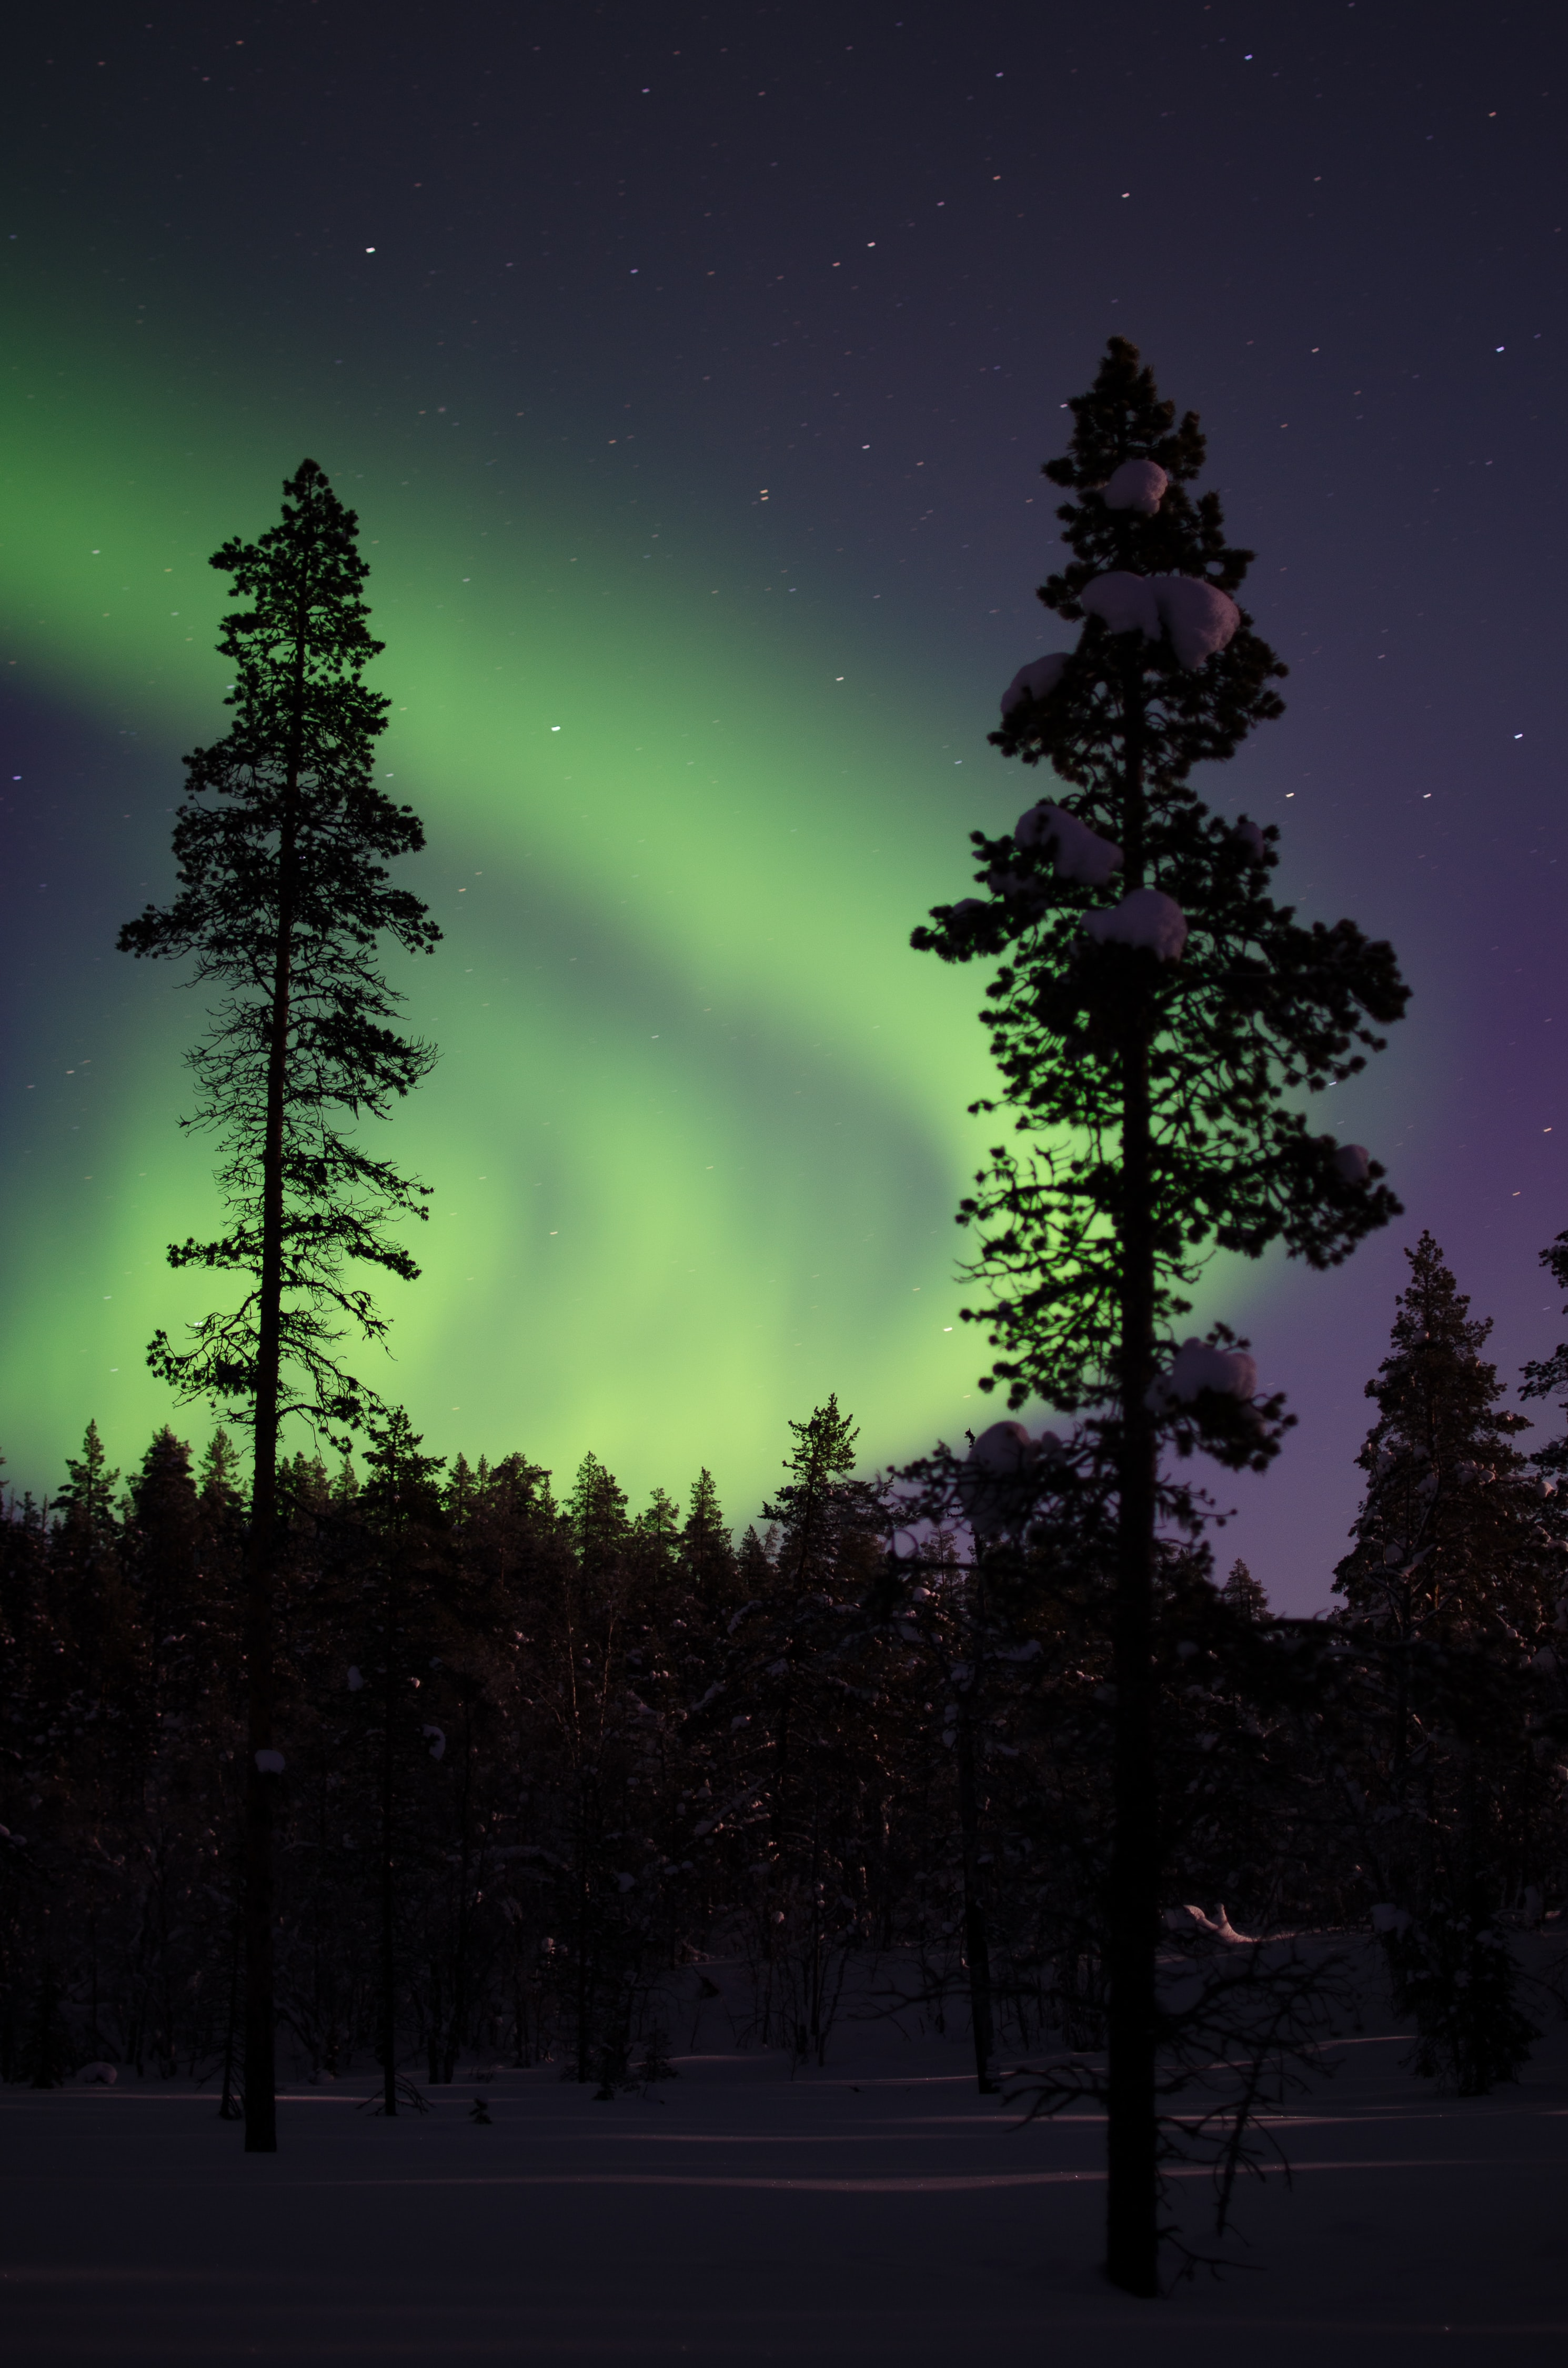 Northern light with pine trees at night